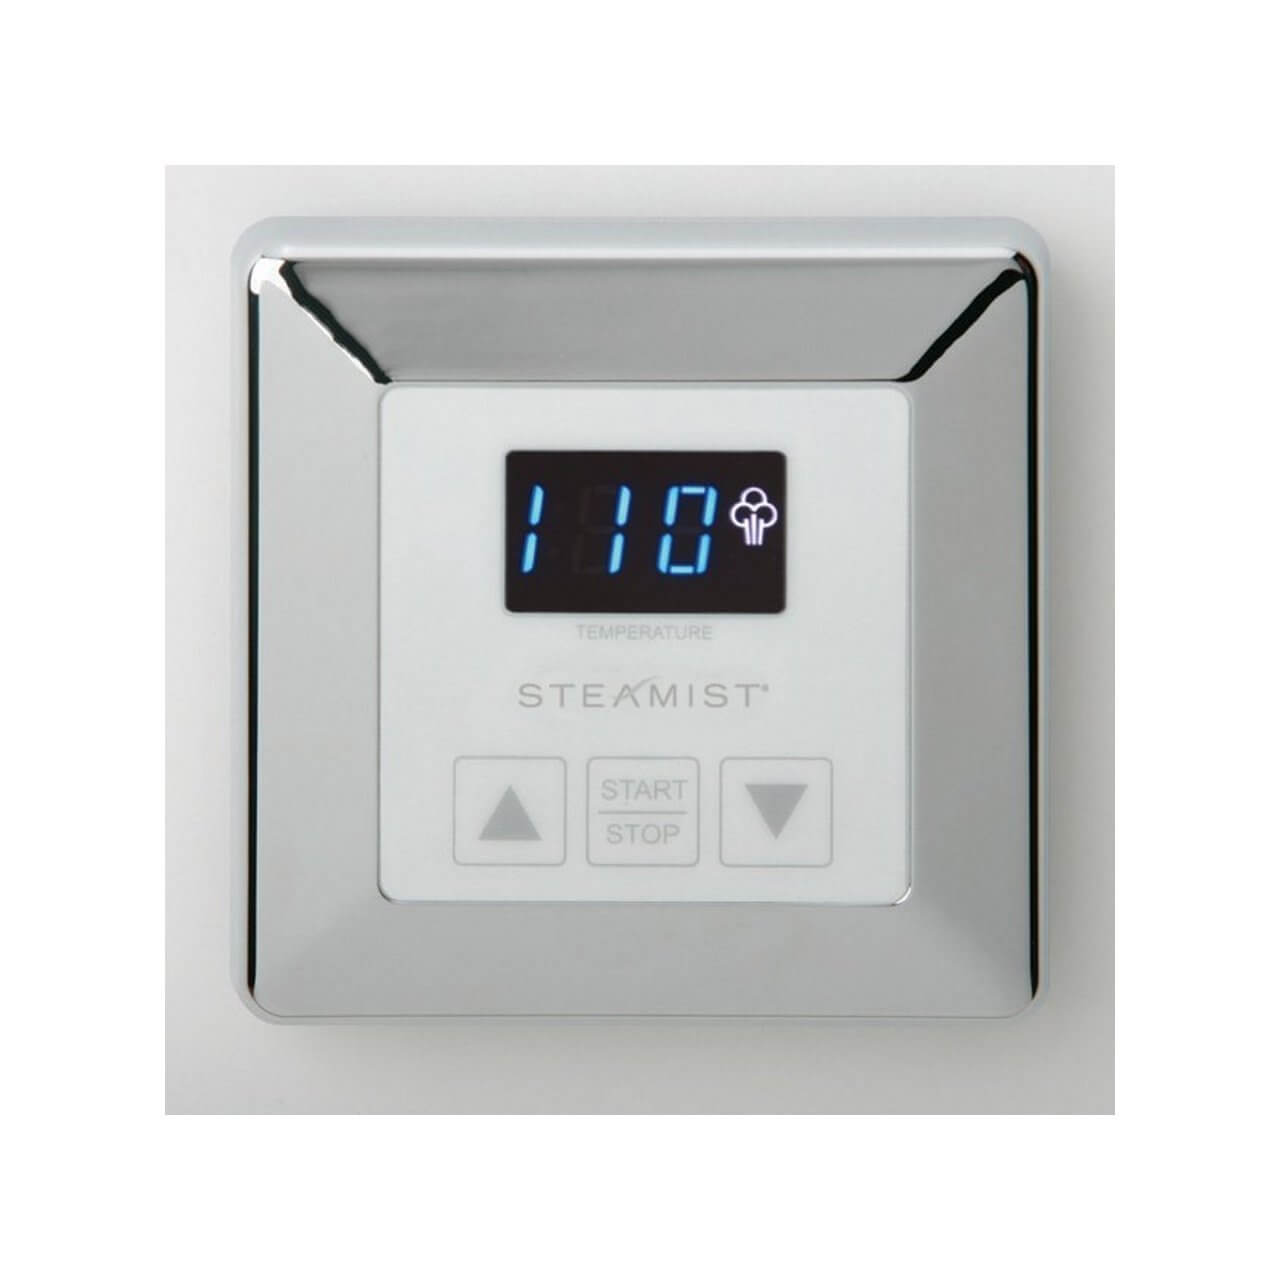 Steamist SMC-150-PC Time/Temperature Control, Polished Chrome